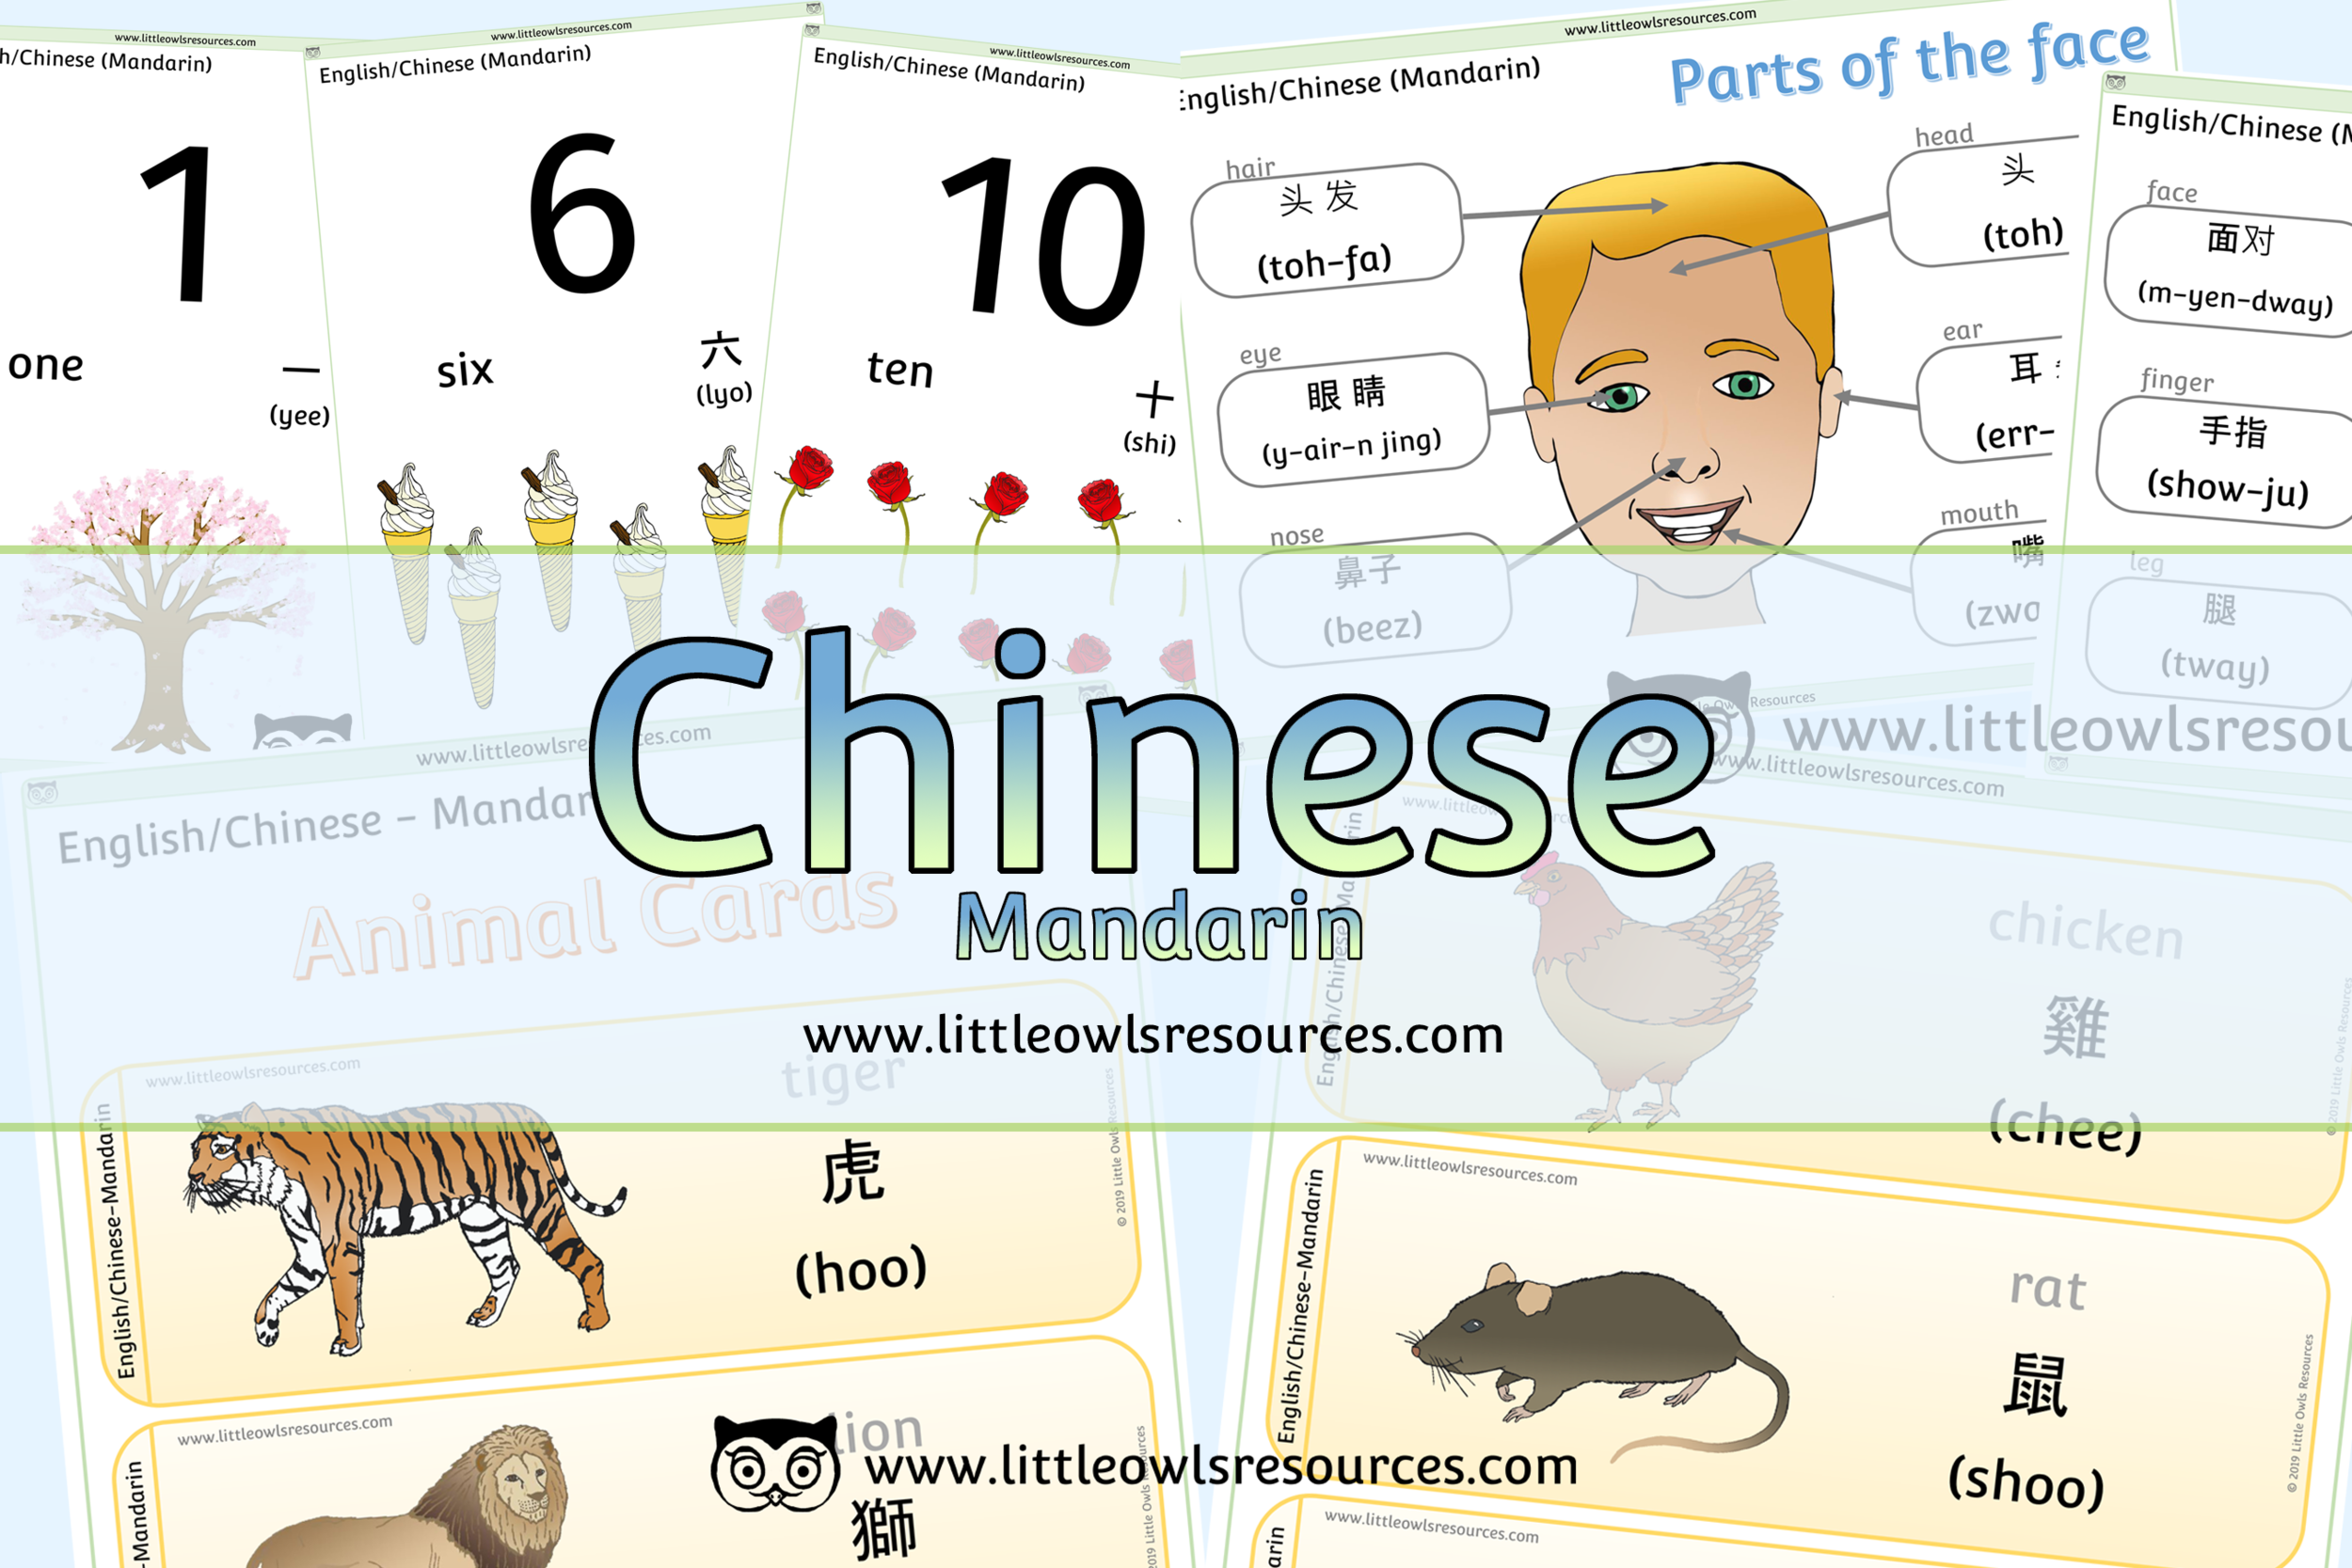 Chinese Mandarin/English Dual Language Resources